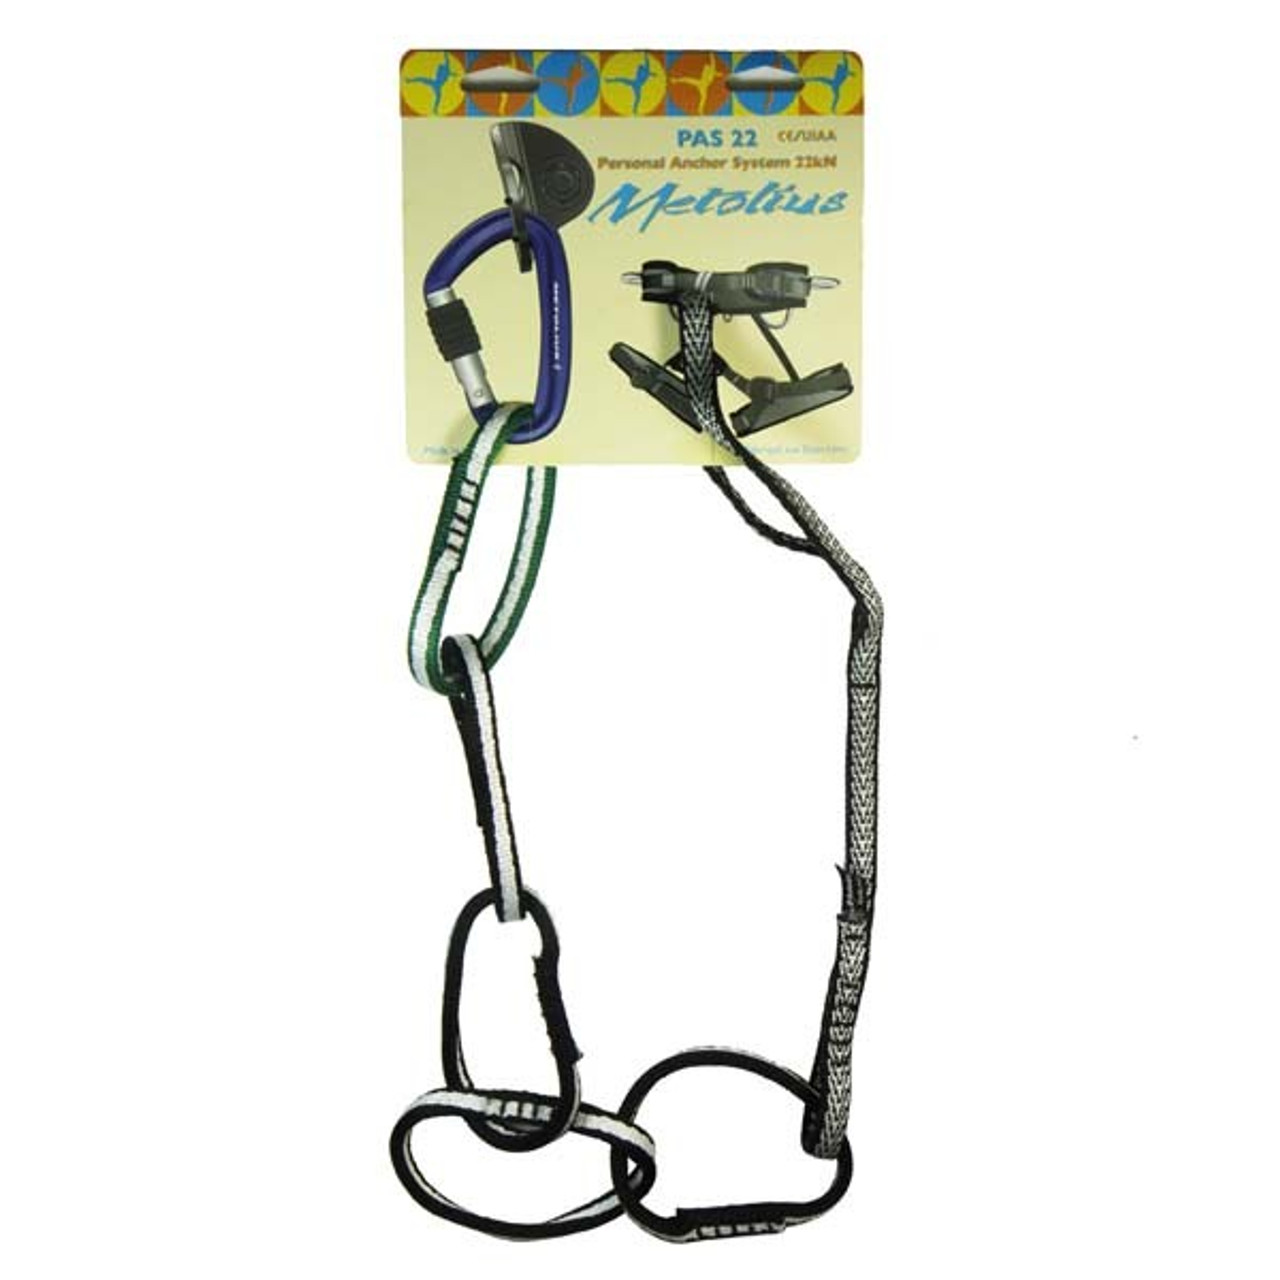 Metolius Personal Anchor System (PAS)